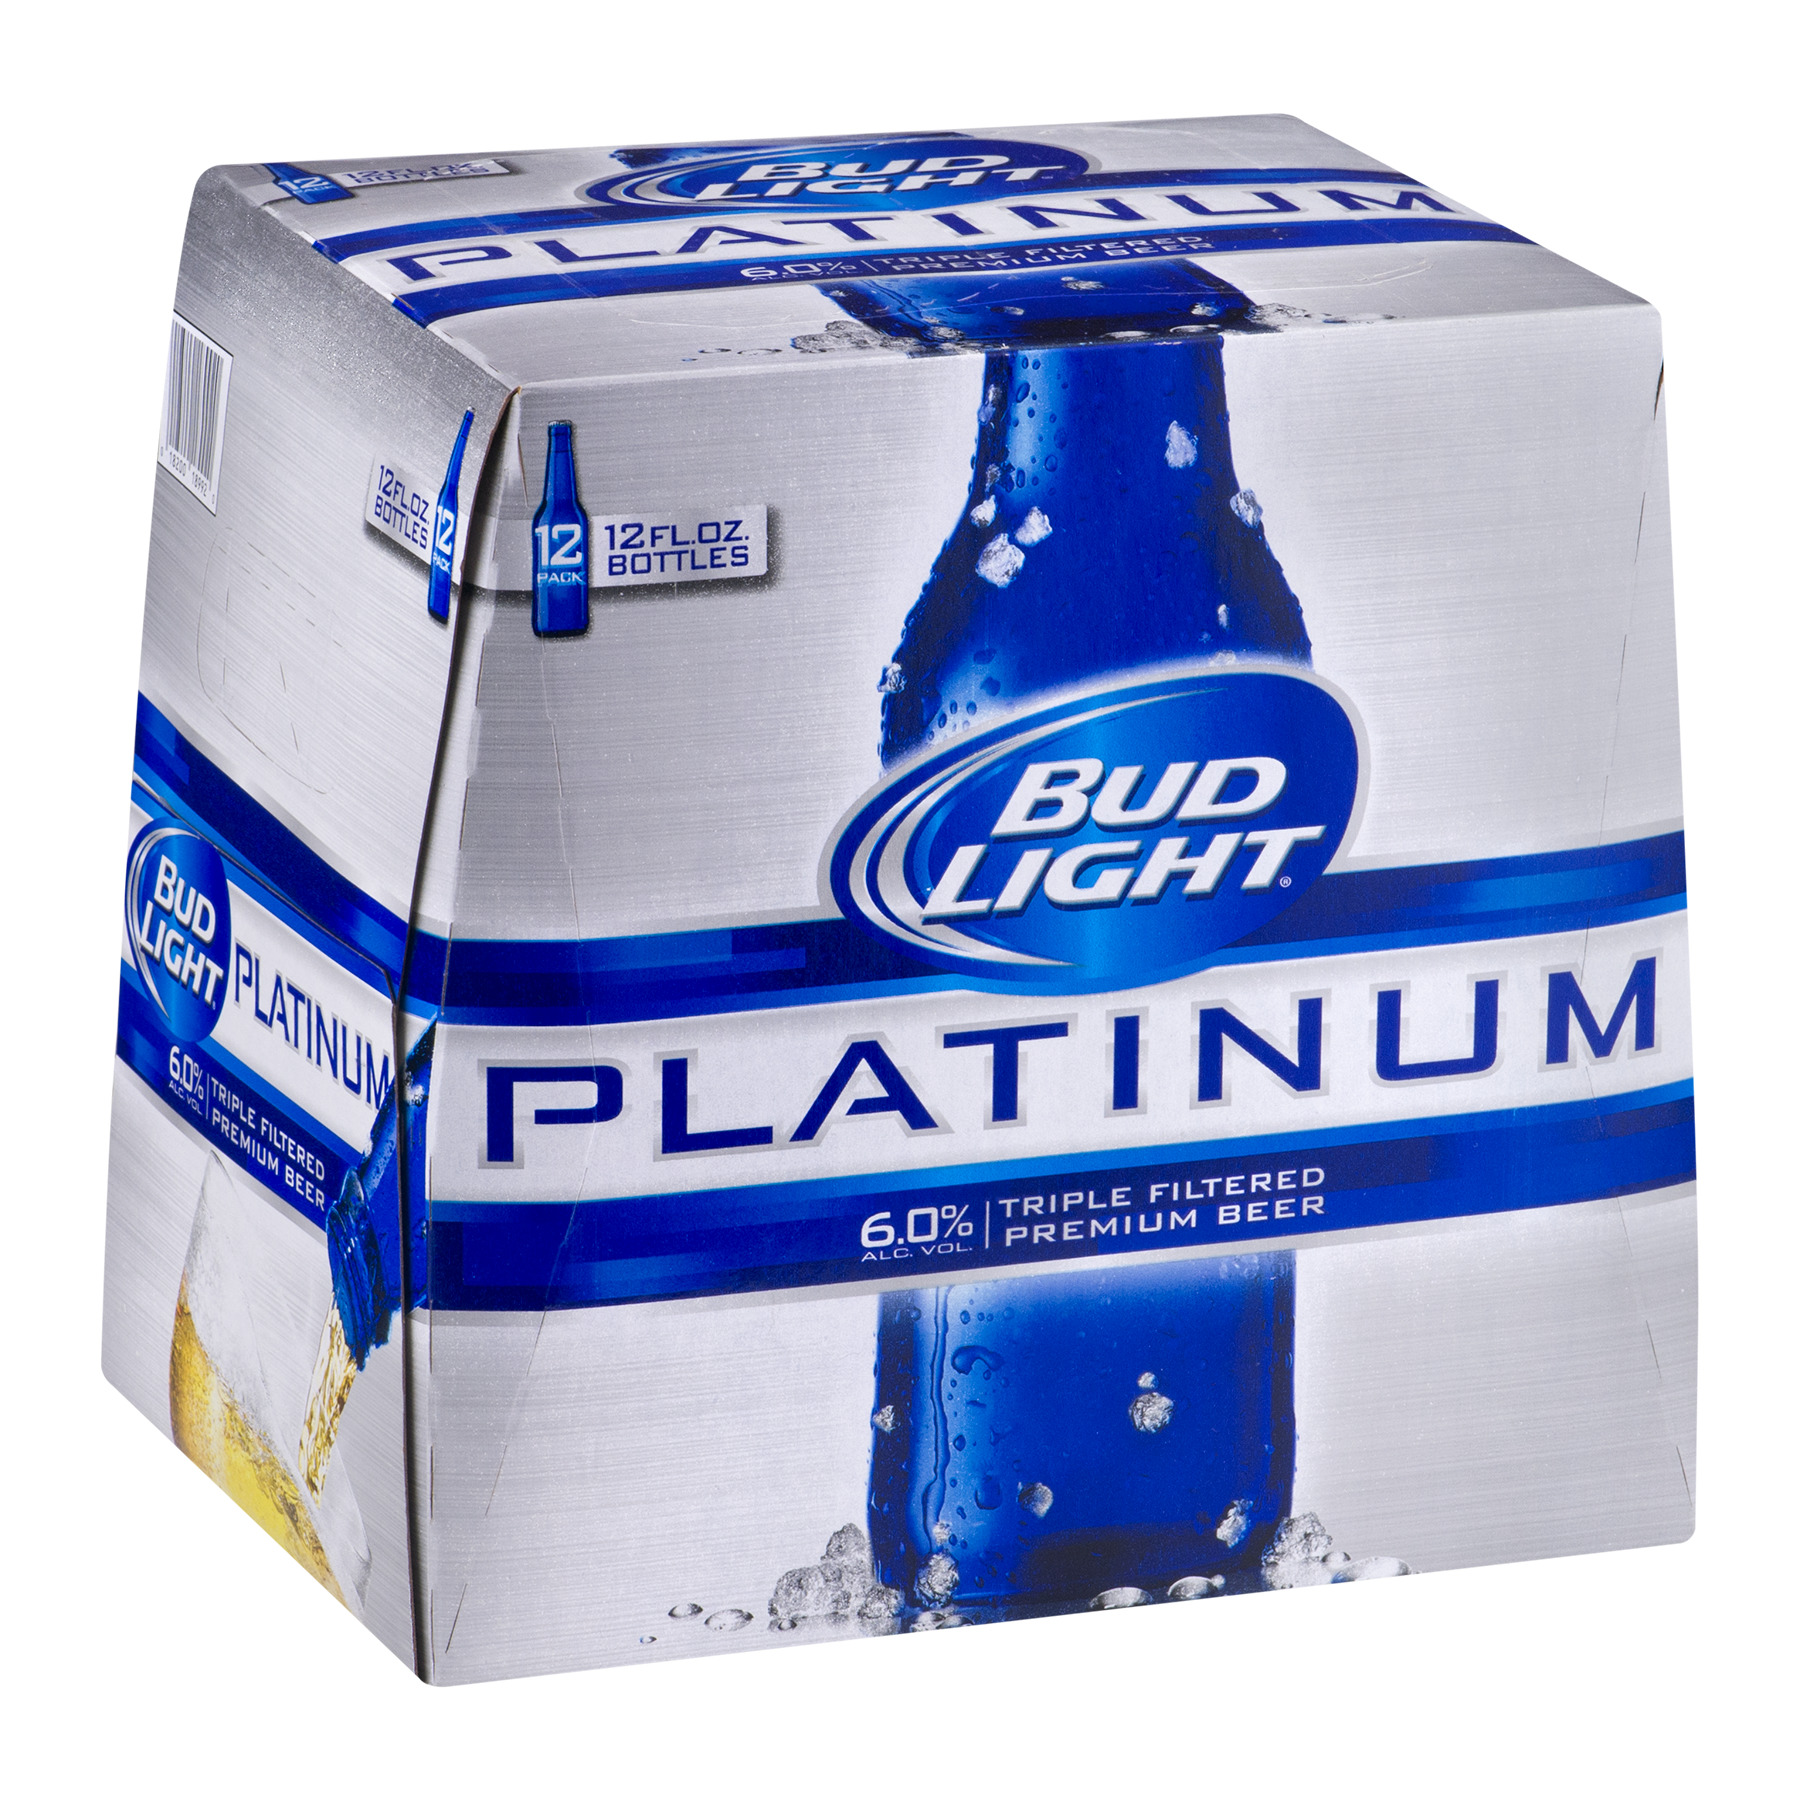 Bud Light Platinum Beer, 12 Pk 12 Fl. Oz. Bottles   Walmart.com Great Ideas